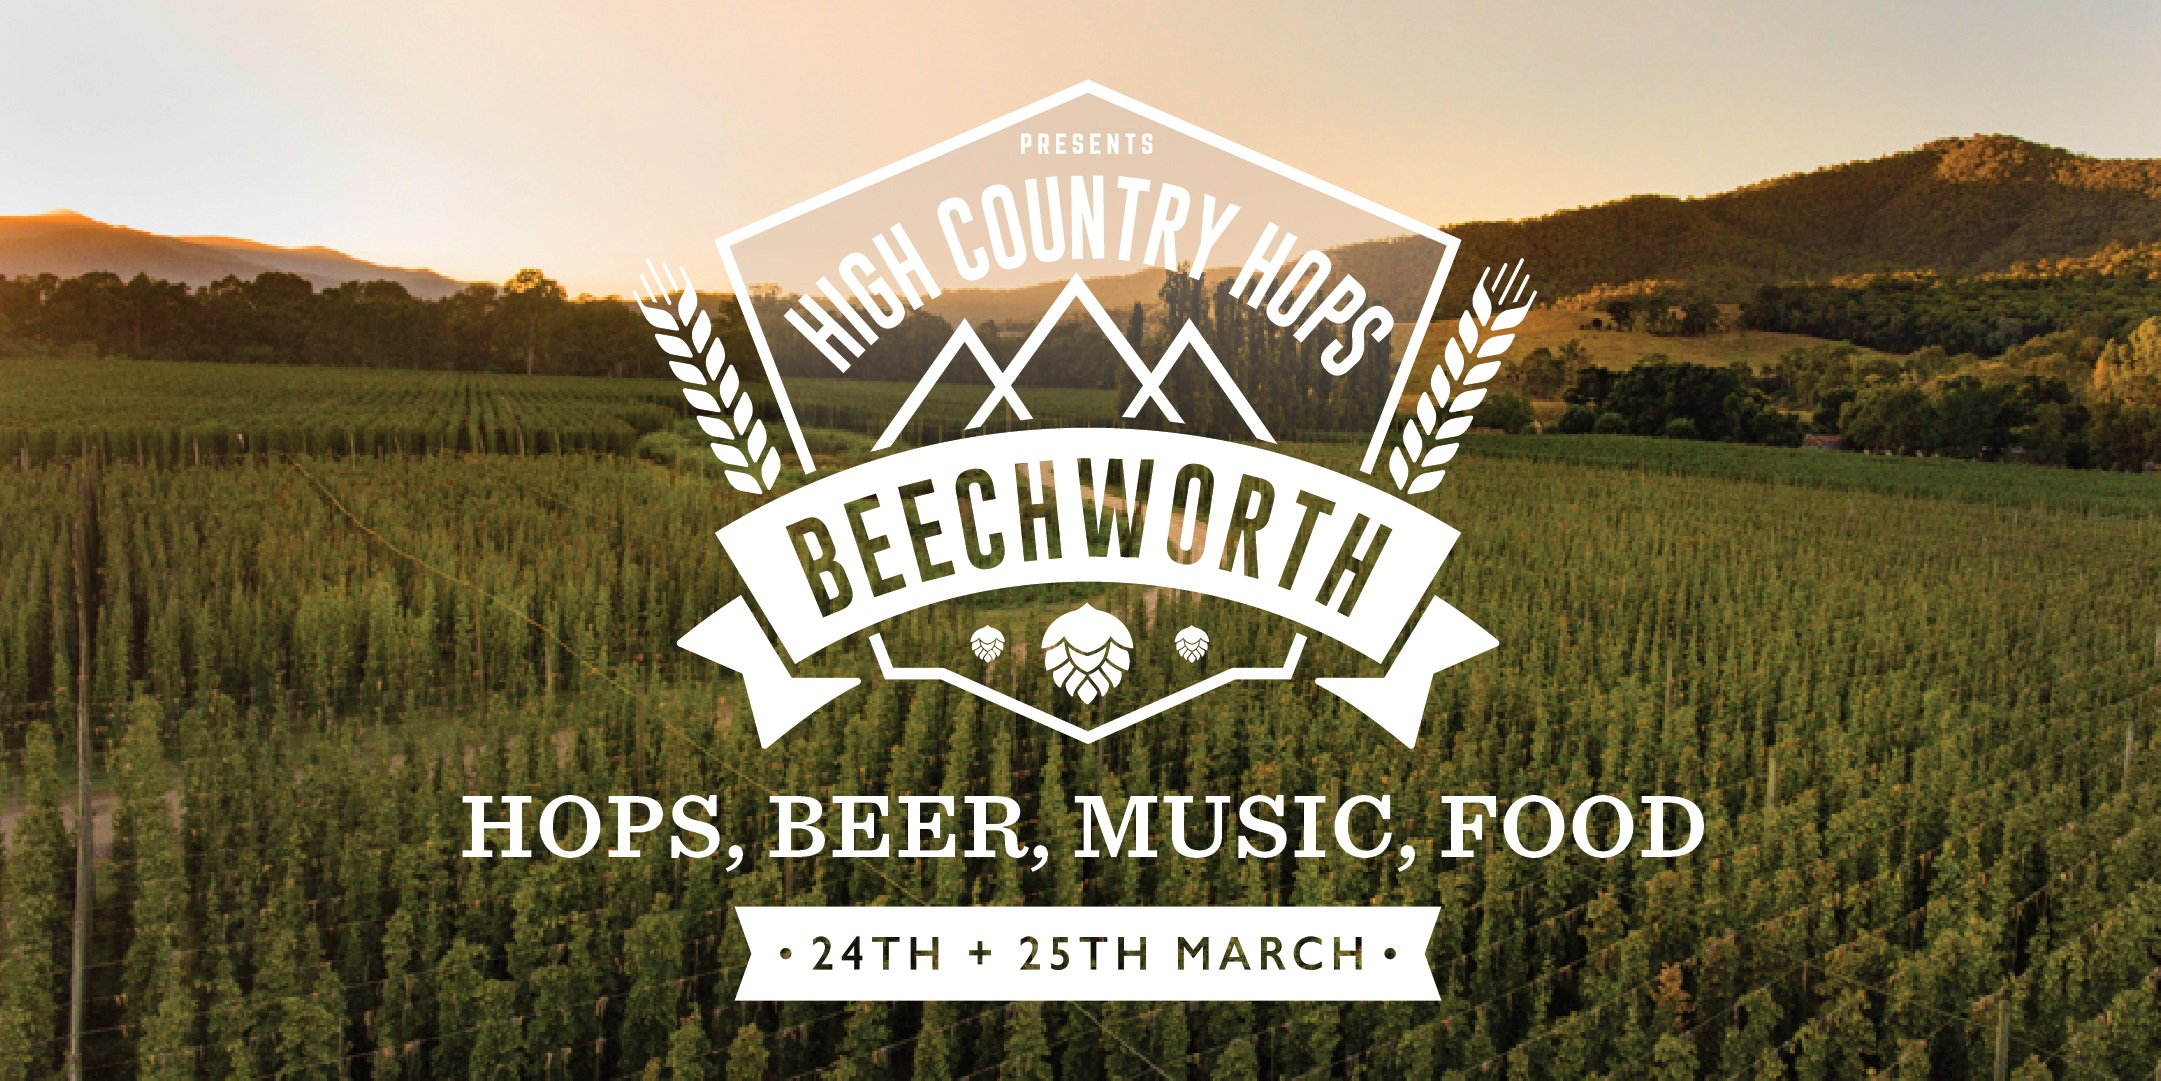 High Country Hops